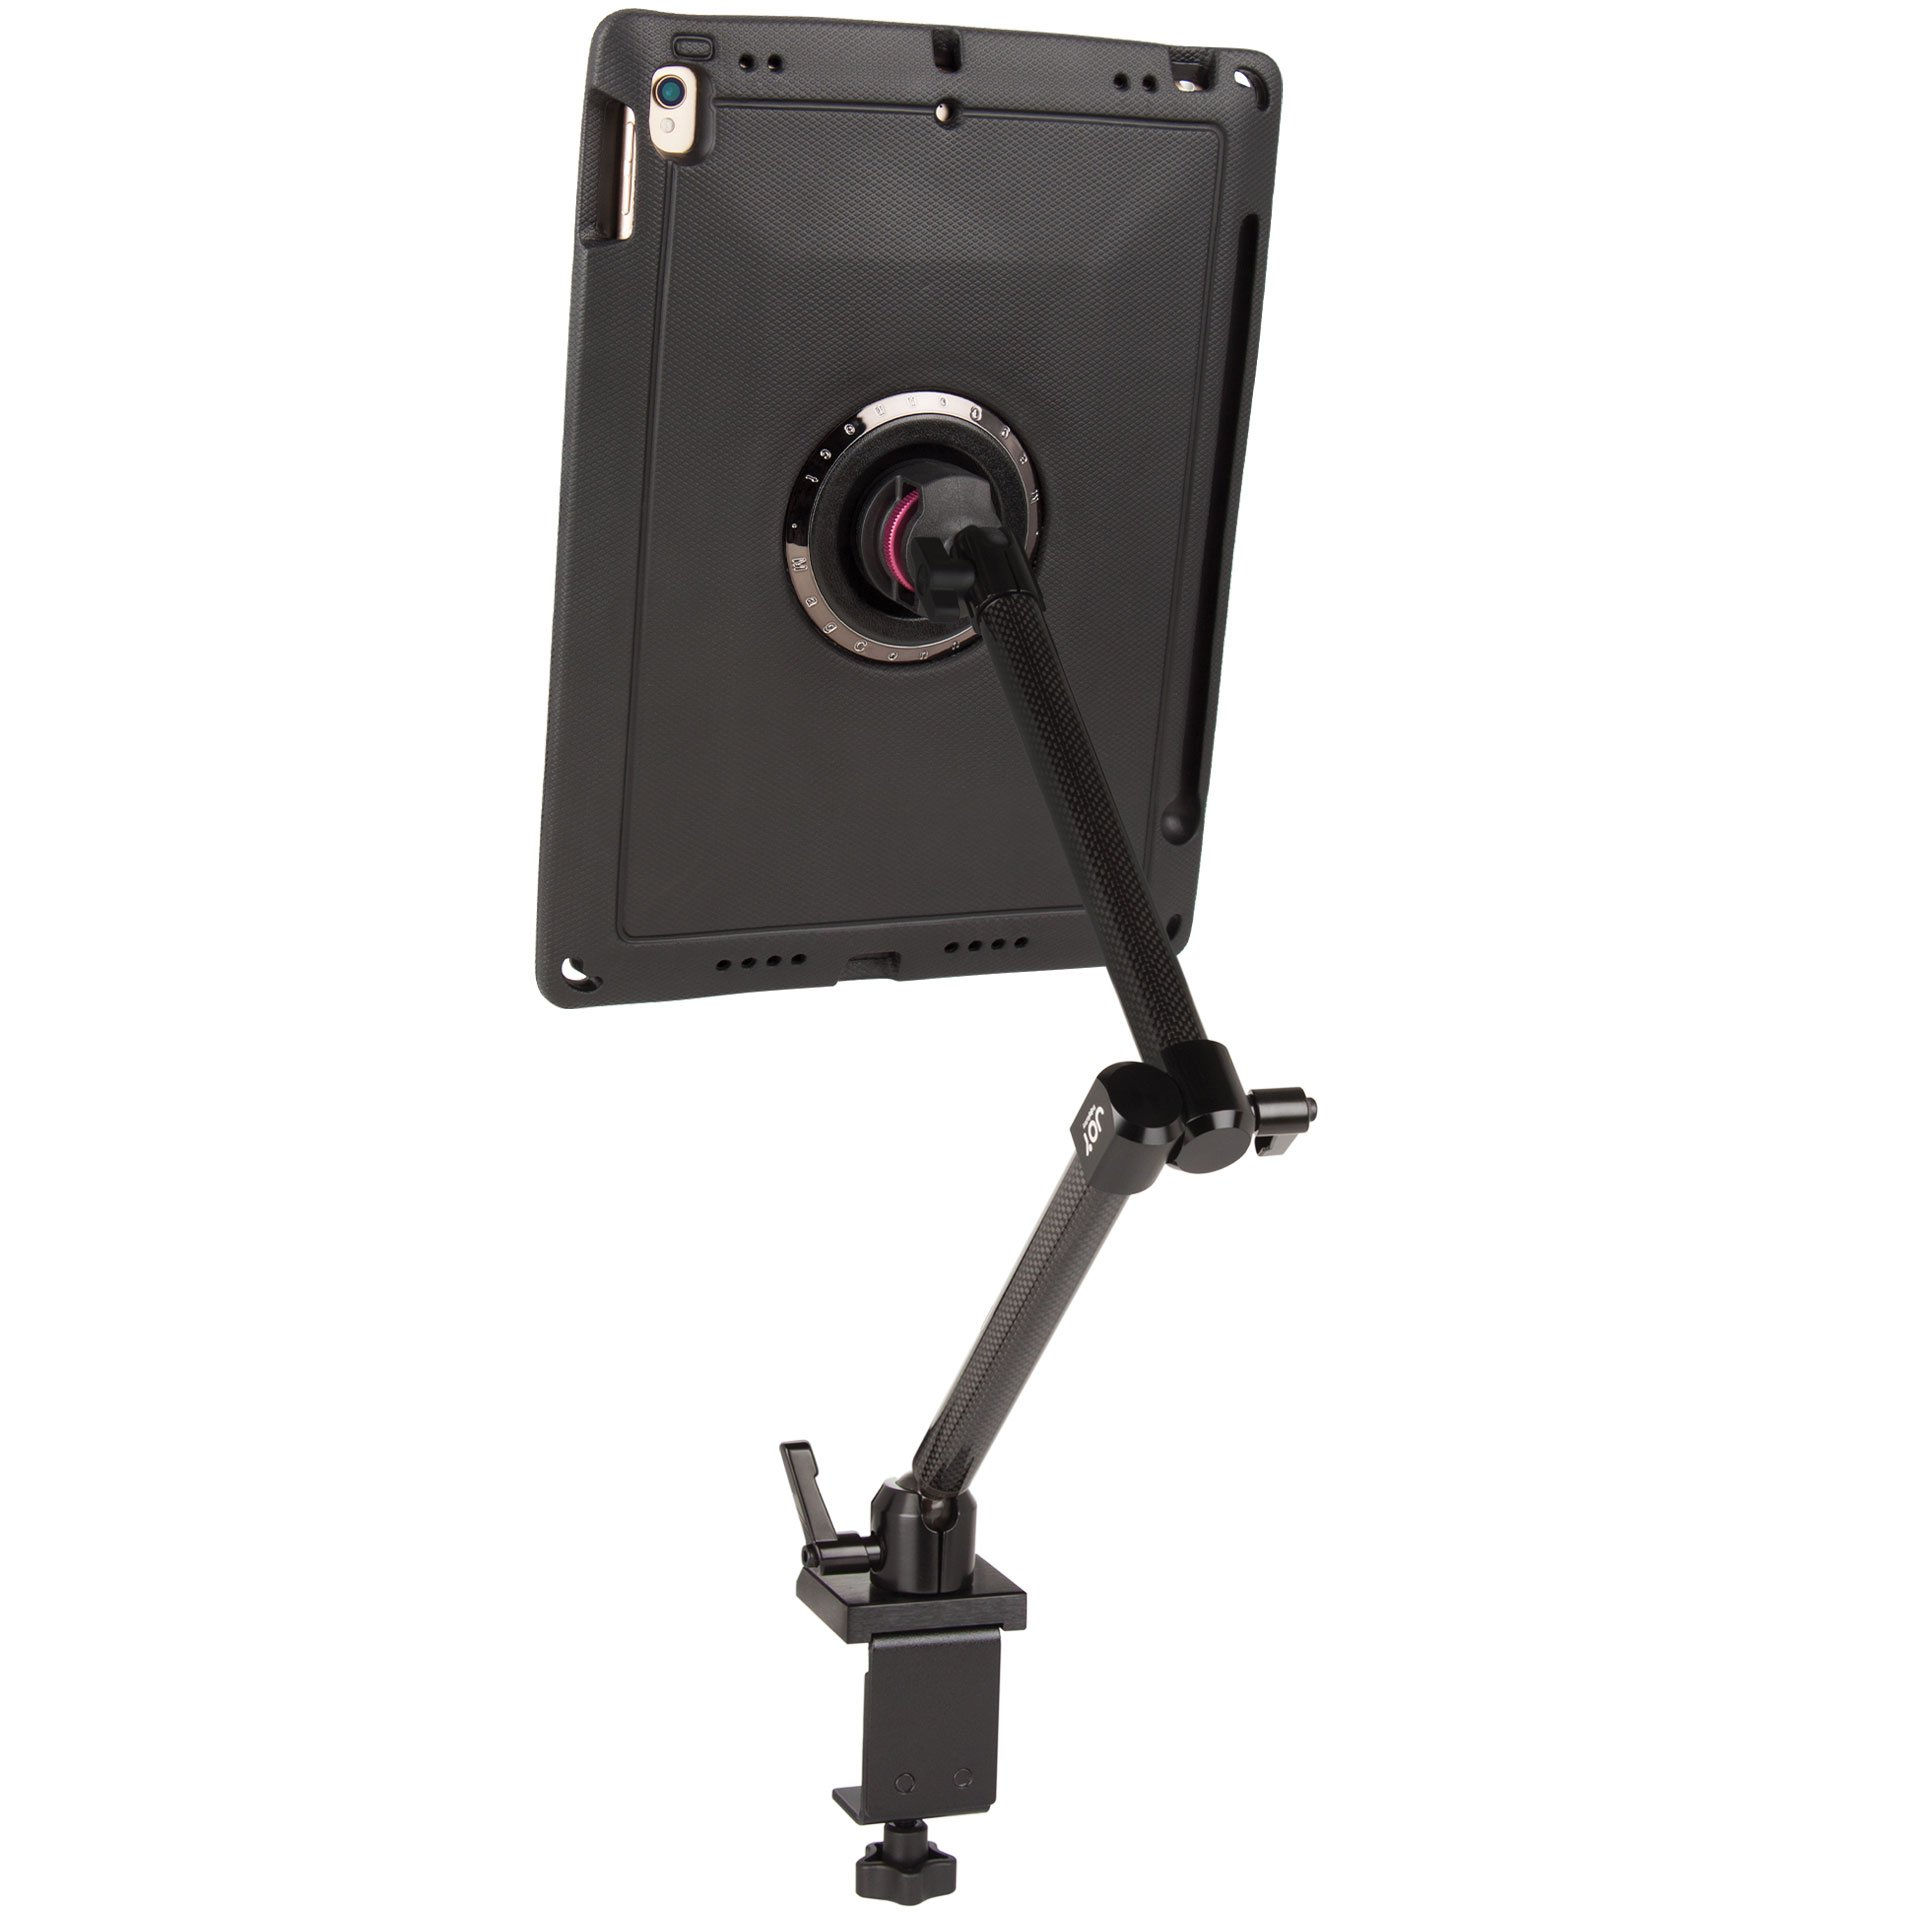 """The Joy Factory MagConnect Carbon Fiber Clamp Table Mount with aXtion Edge M Rugged Case for iPad Pro 10.5"""" and iPad Air 3 (MWA703)"""